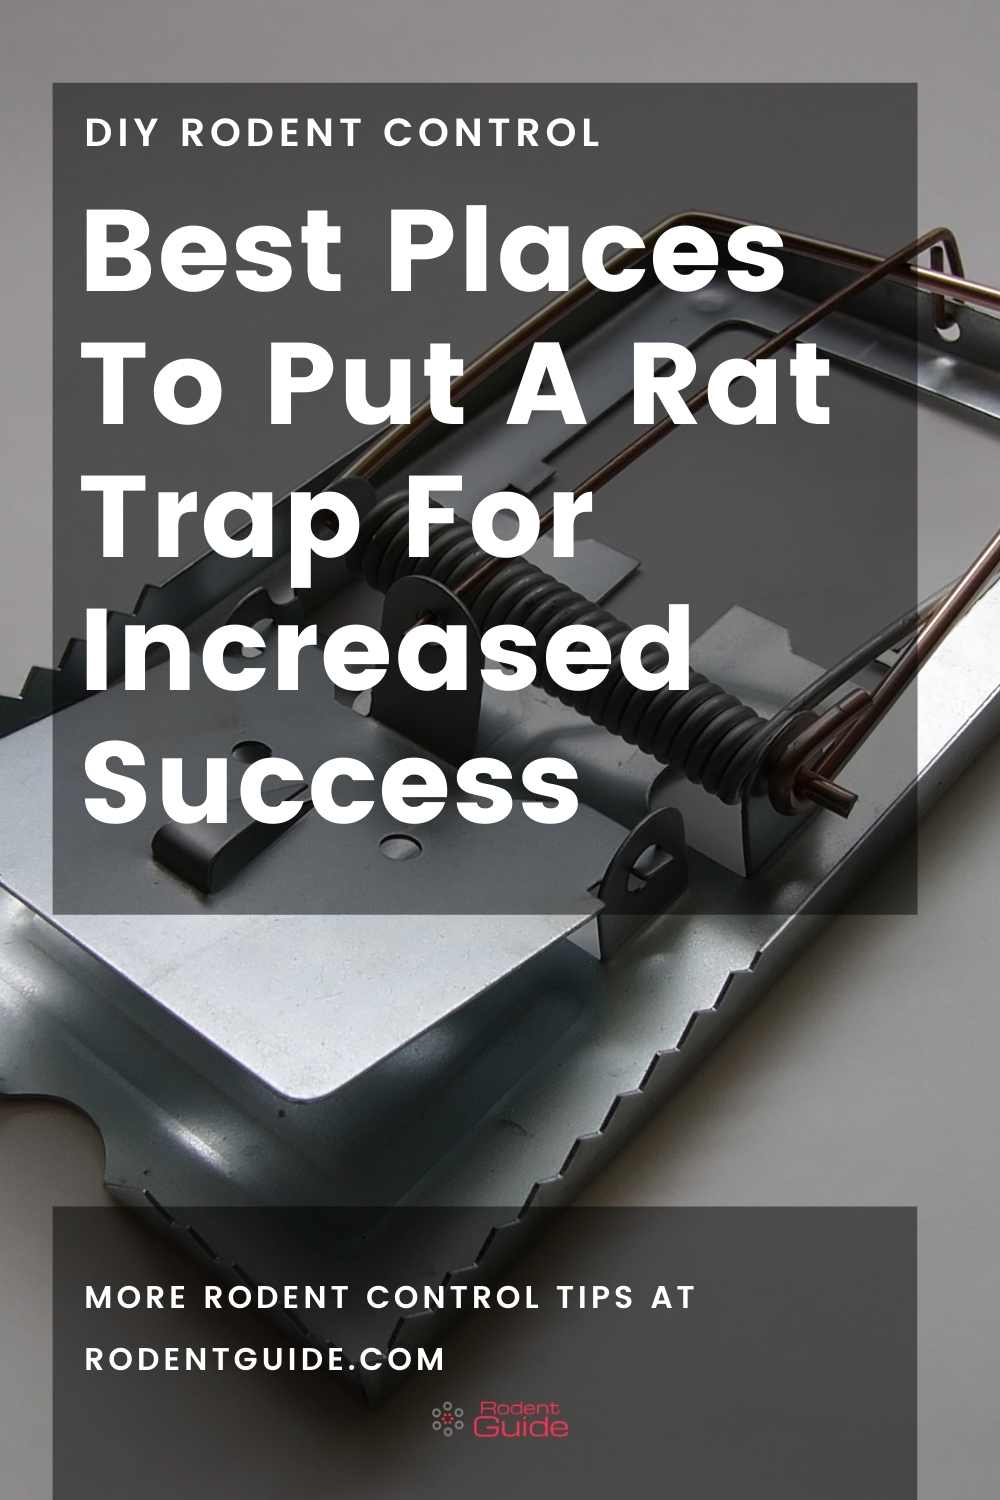 Best Places To Put A Rat Trap For Increased Success